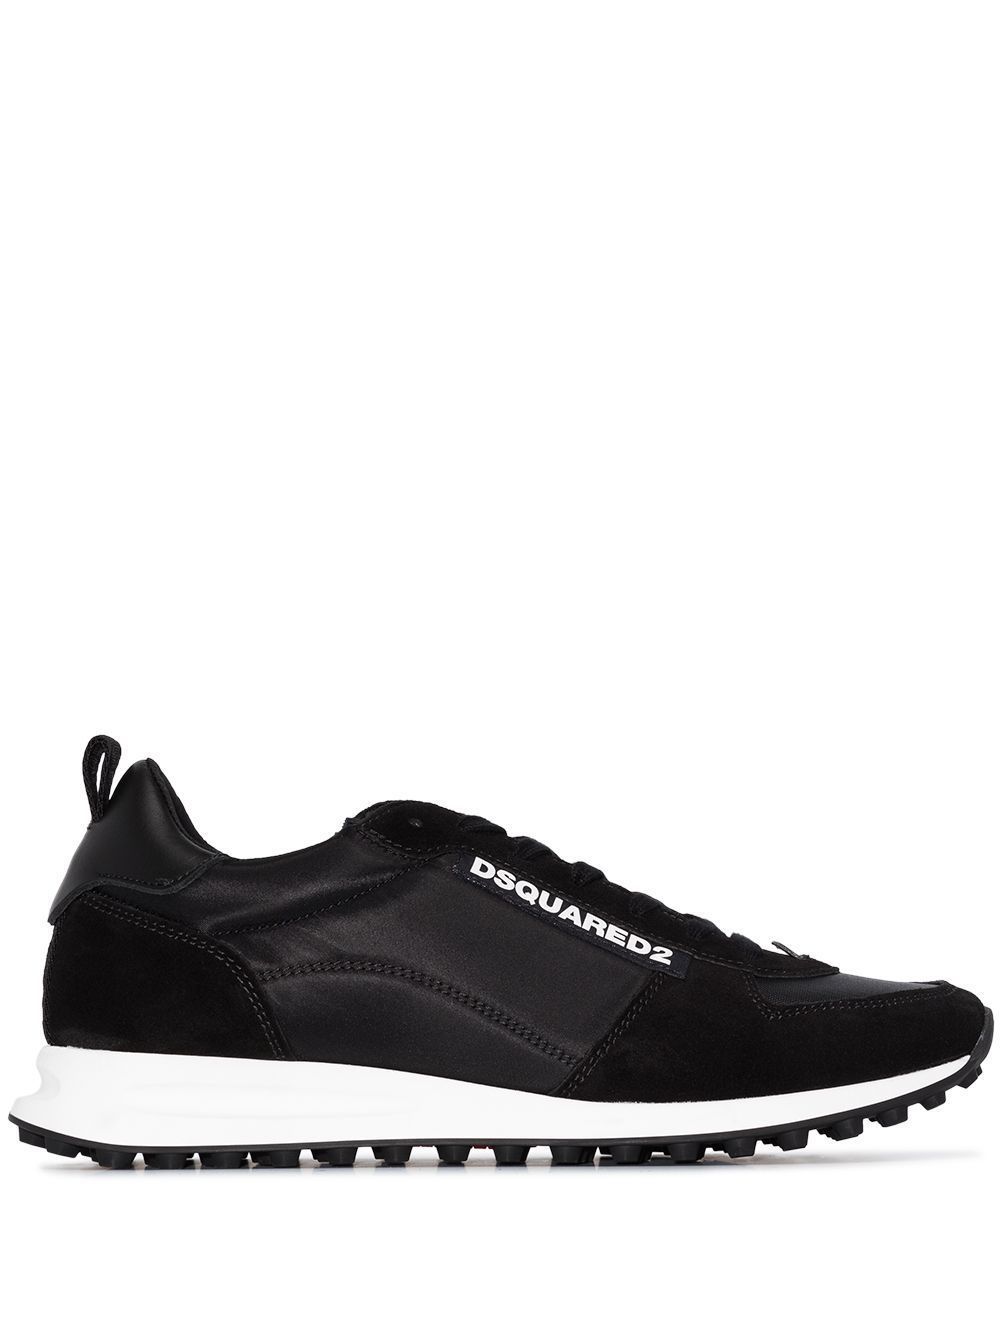 DSQUARED2 New Runner Sneakers Black